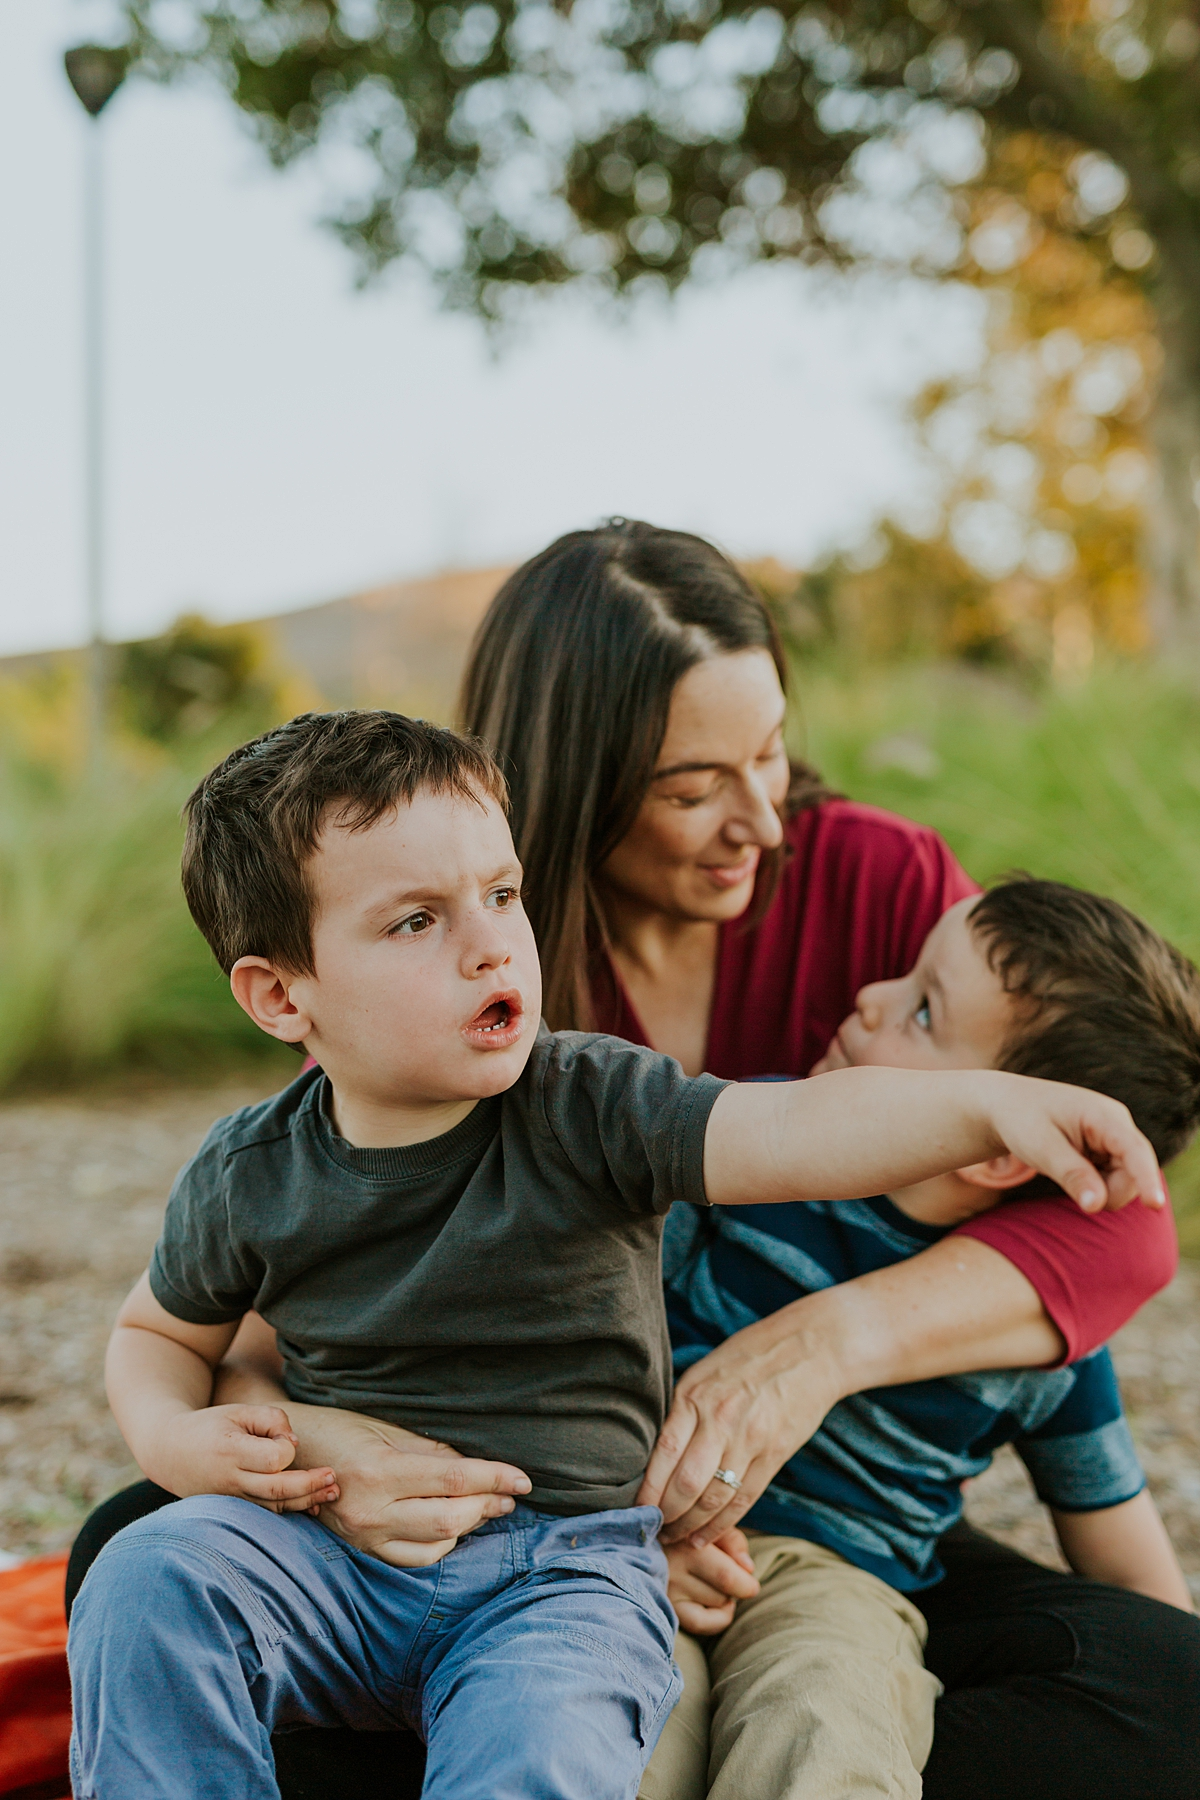 Orange County family photographer. Candid photo of mom and her two boys sitting on her lap during family photo shoot at Quail Hill with Krystil McDowall